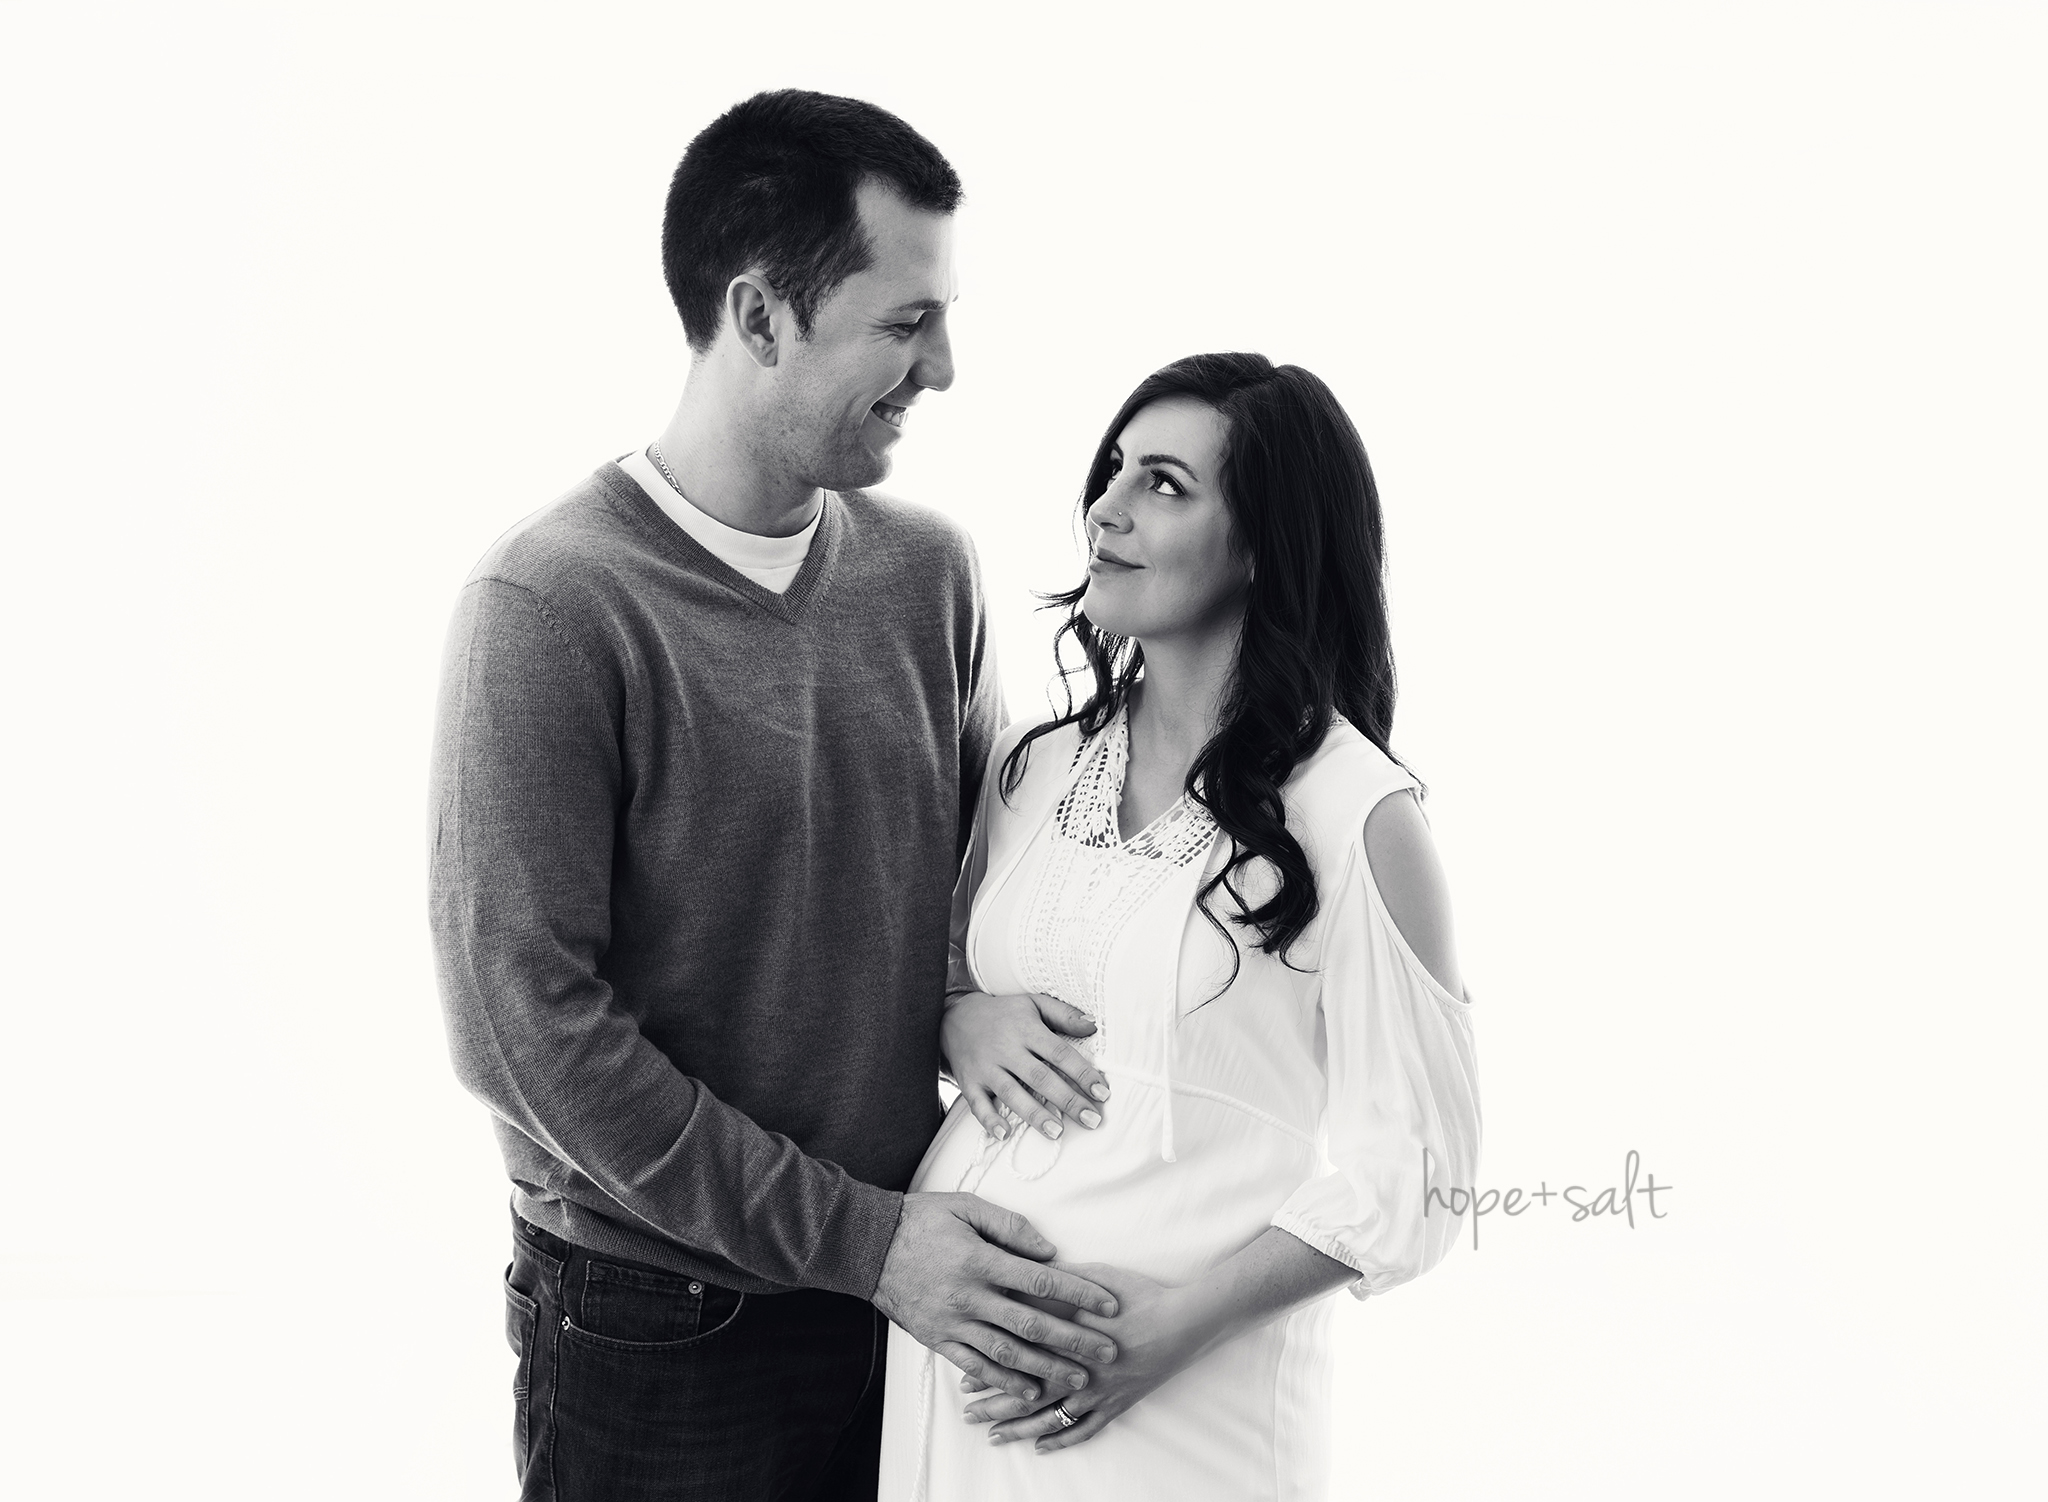 burlington maternity photographer - natural simple bright pregnancy photos in studio of expecting Elaine and family by Hope and Salt